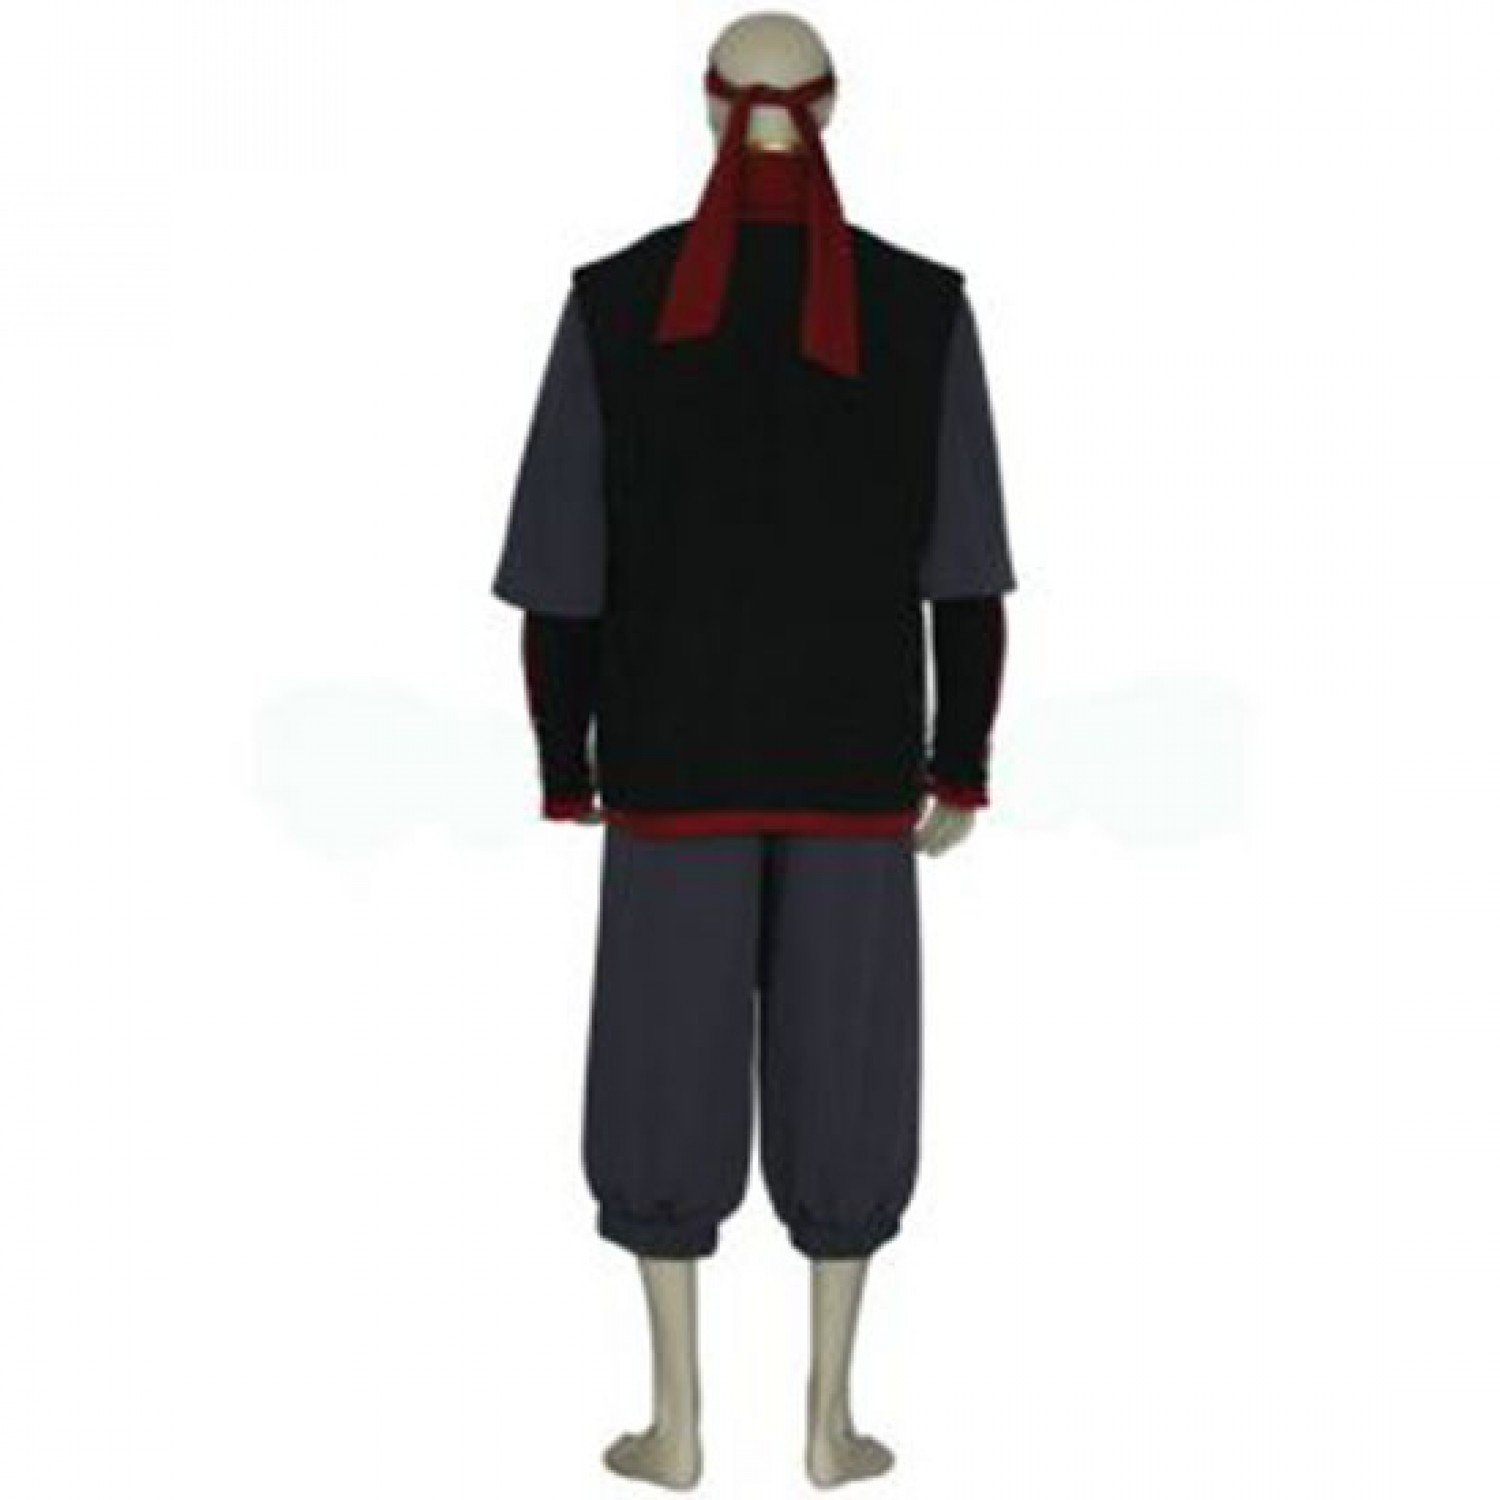 Avatar The Last AirBender Aang Anime Cosplay Costume